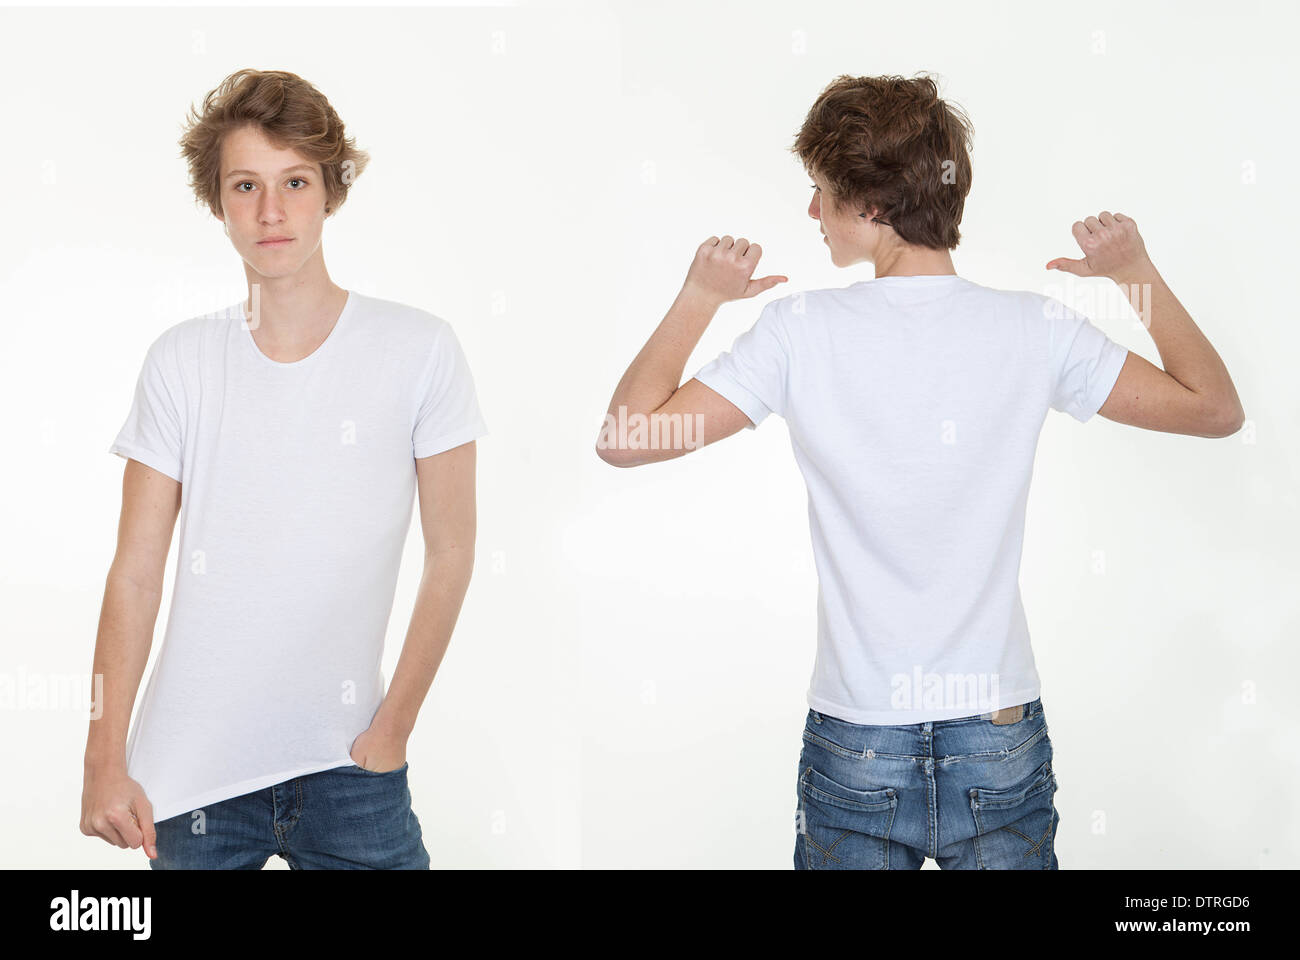 Blank T Shirt Template Front Back Stockfotos & Blank T Shirt ...